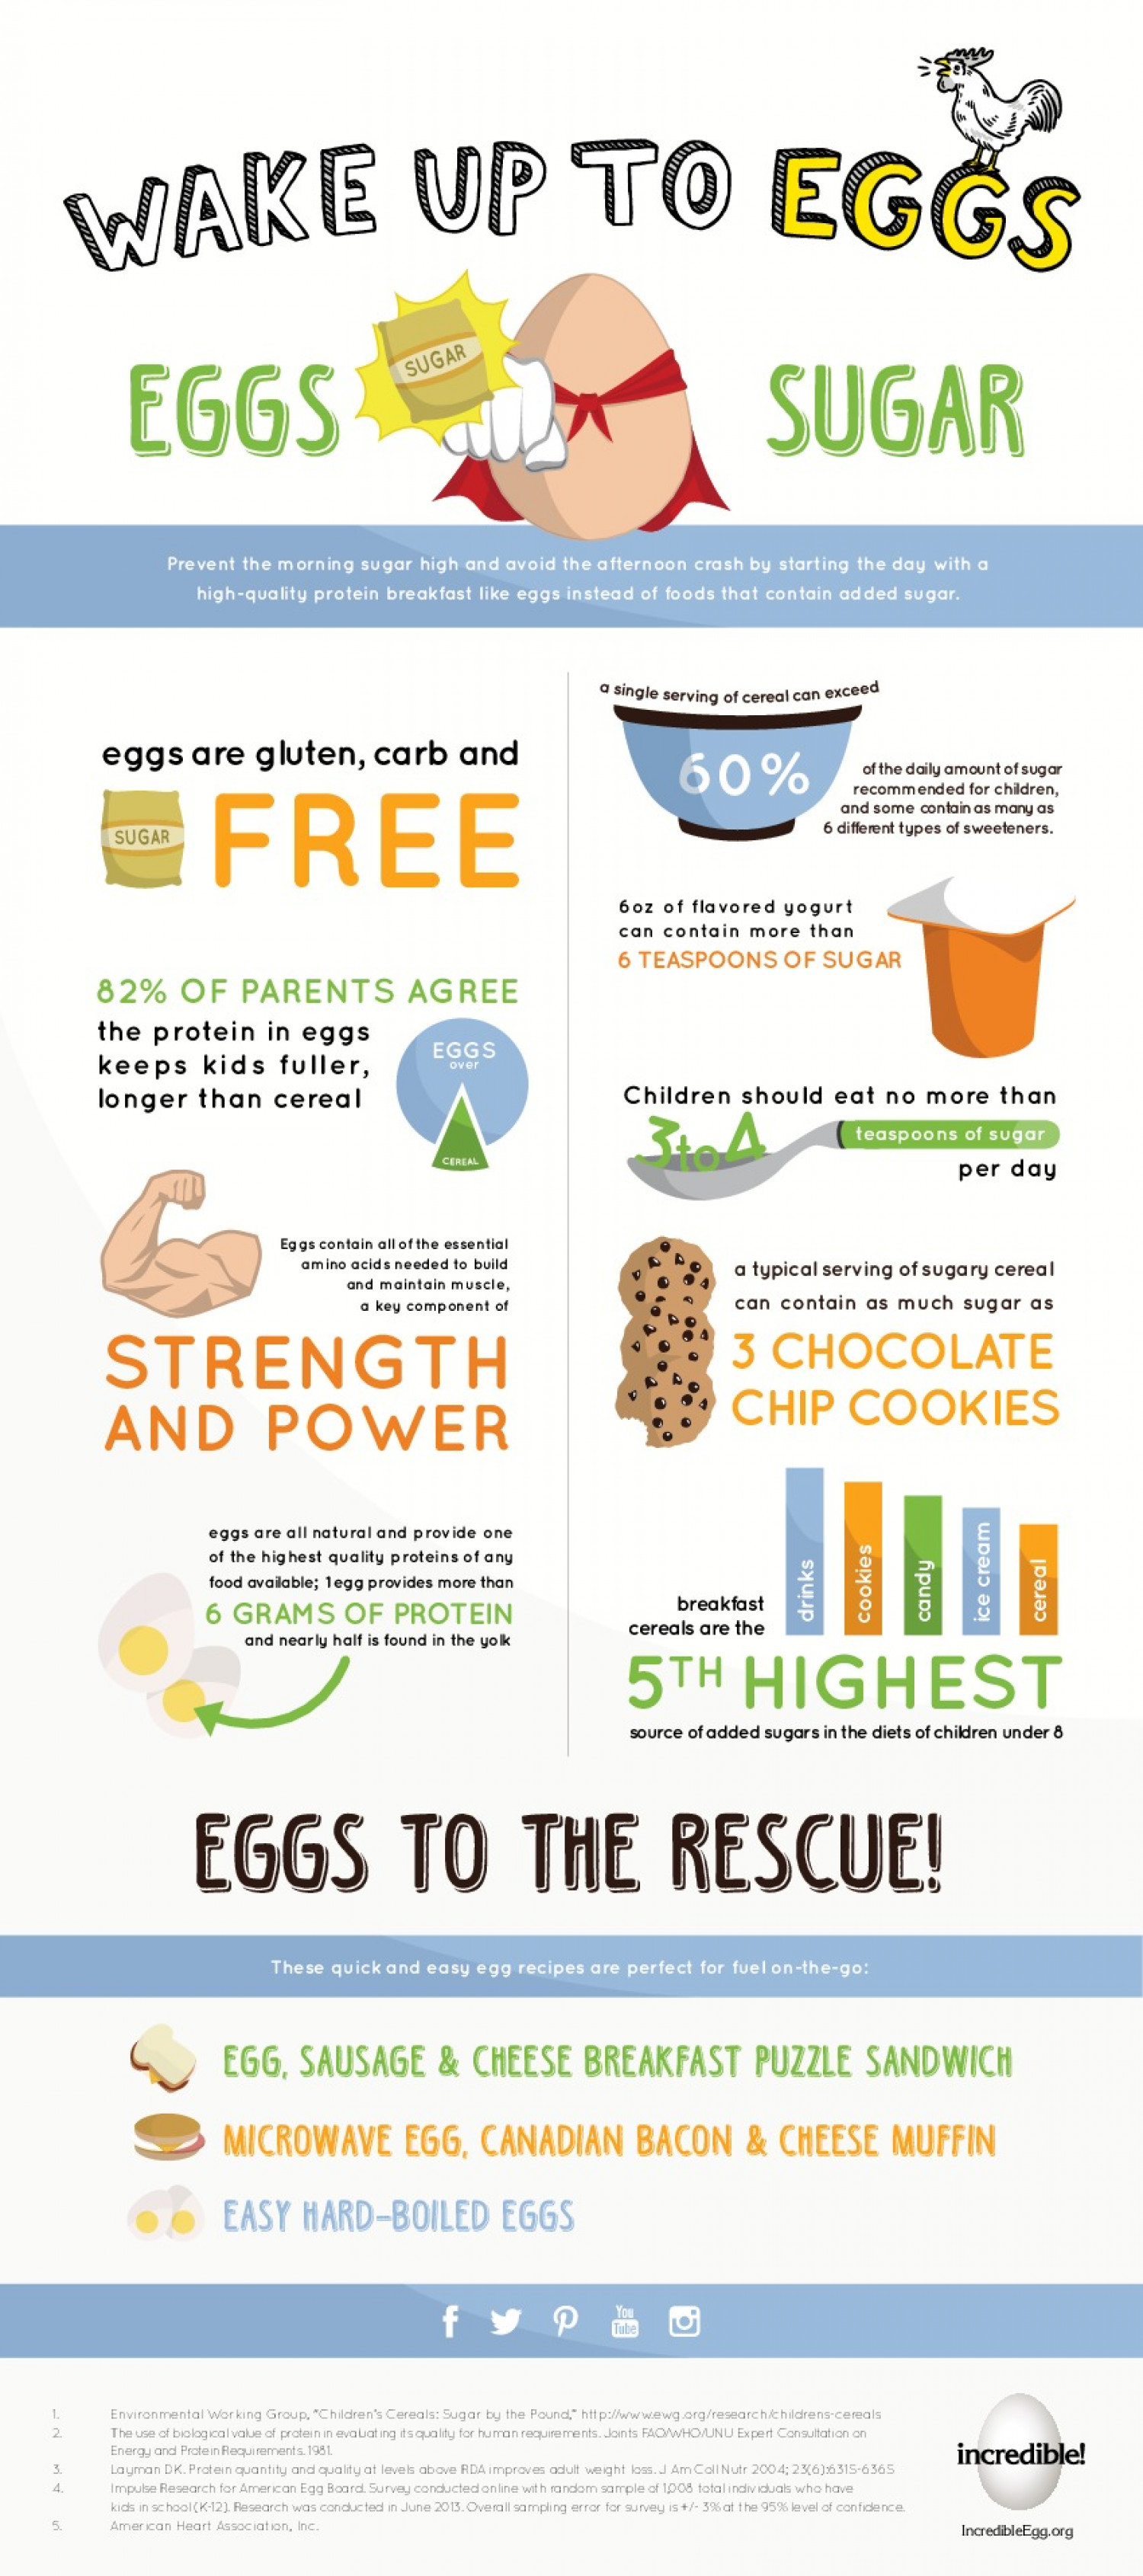 Back to School with Eggs Infographic